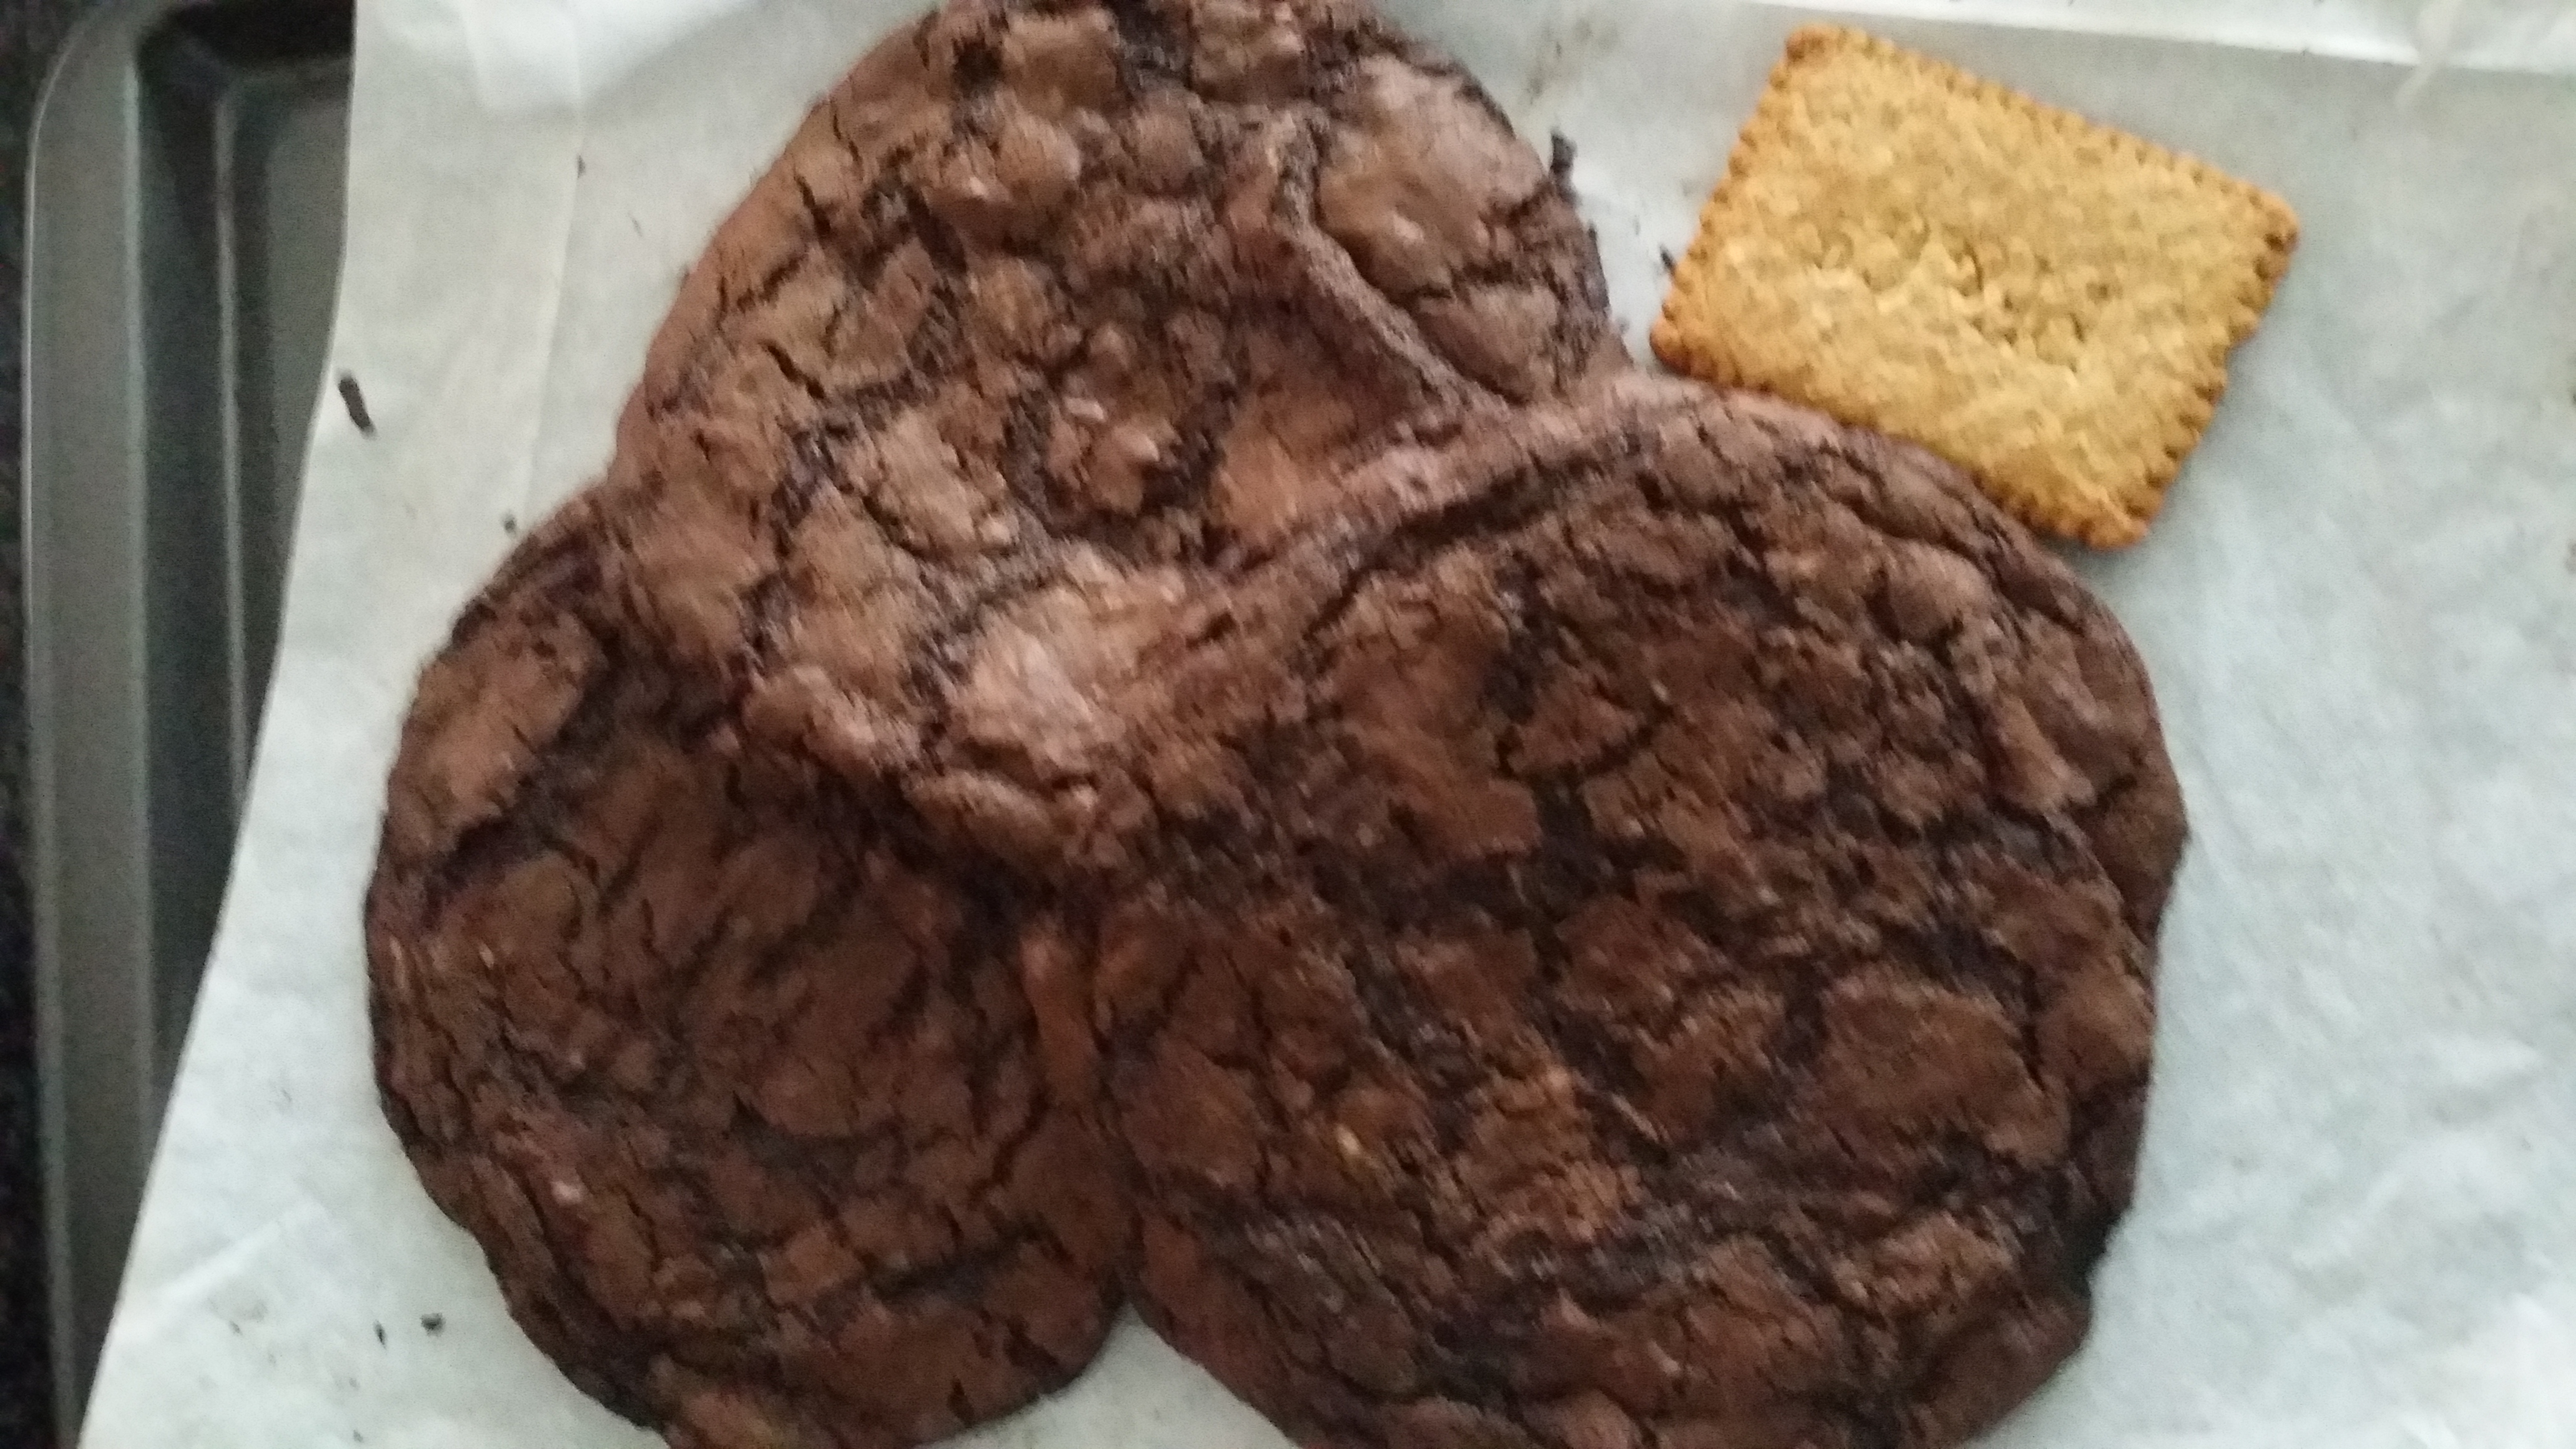 Large Size Chocolate Fudge Cookies for Favours